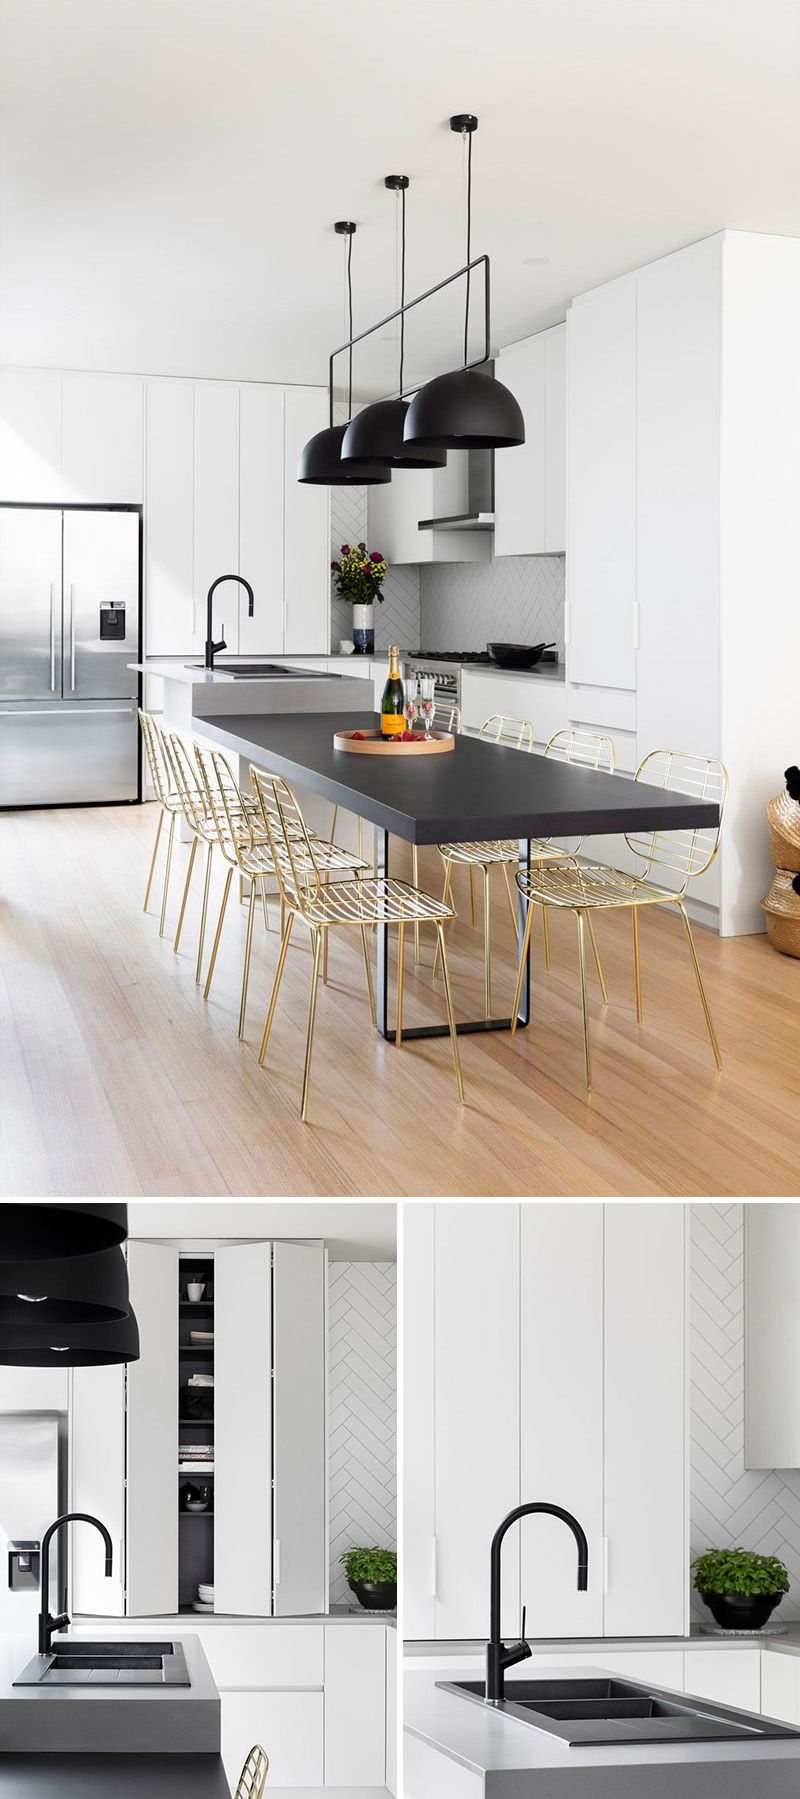 This Modern Kitchen Update Received Touches Of Black And Gold ...